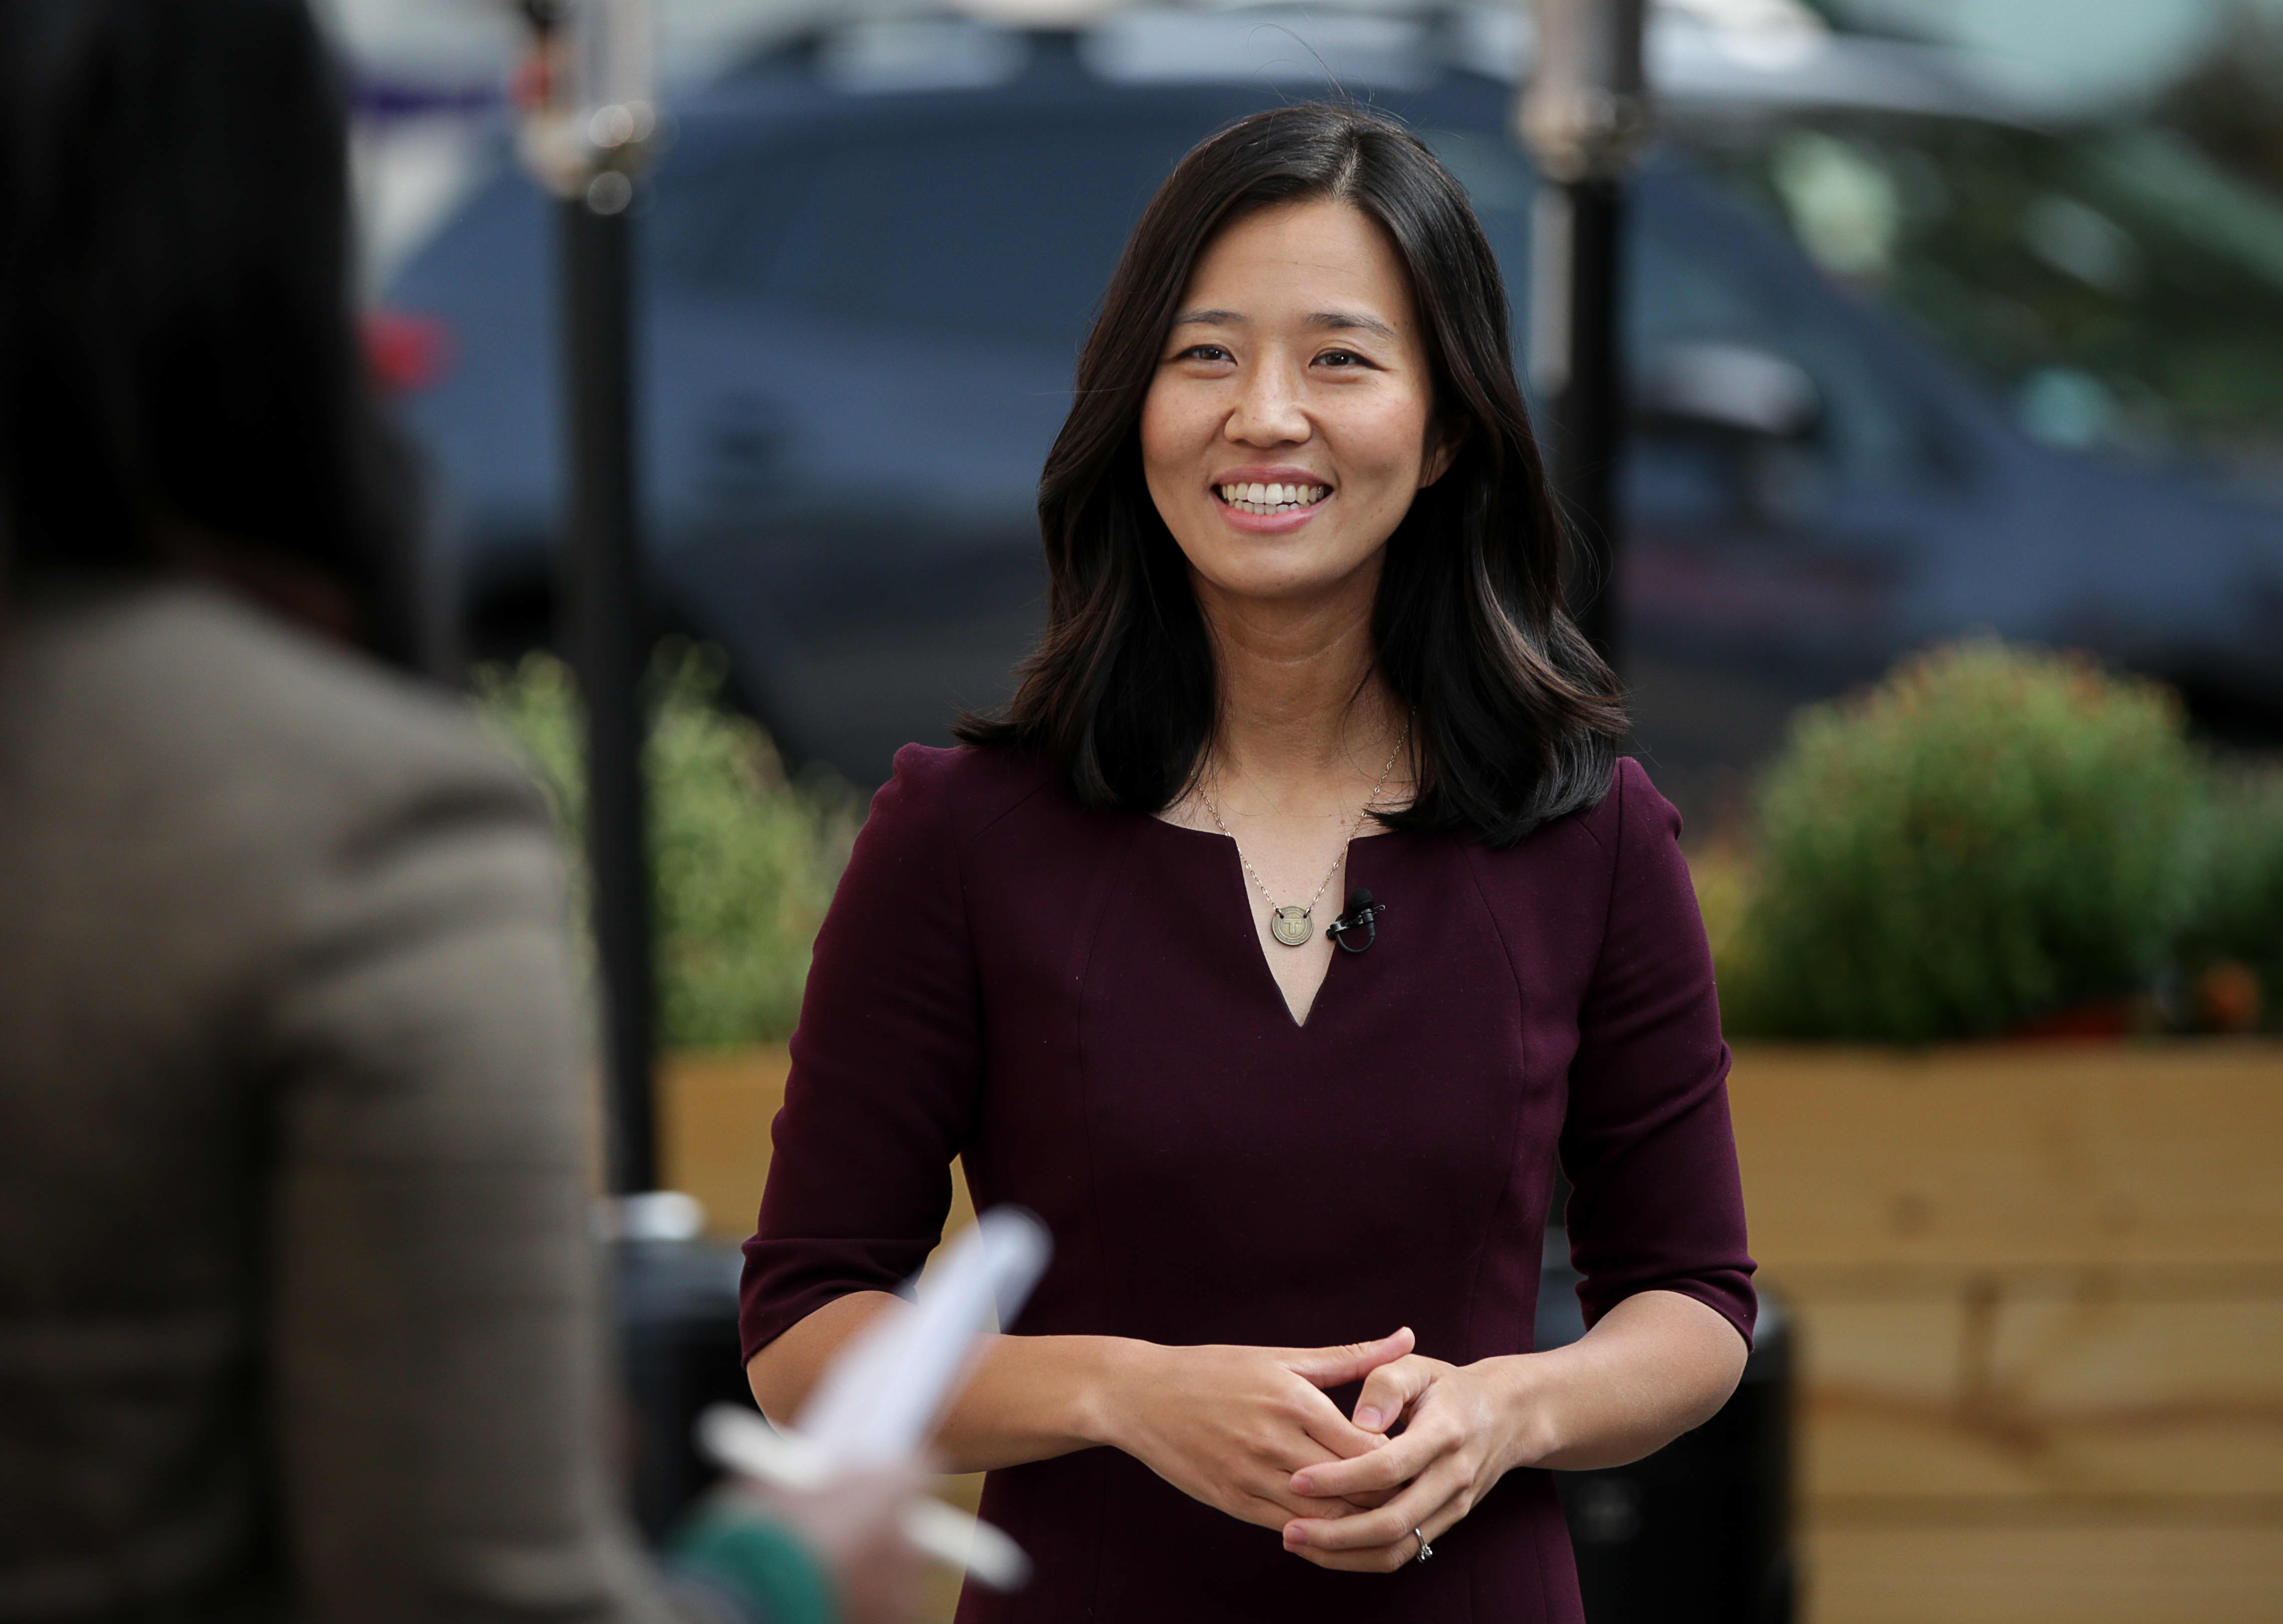 www.cnbc.com: Meet Michelle Wu, Boston's first Asian-American councilwoman, who is now running for mayor